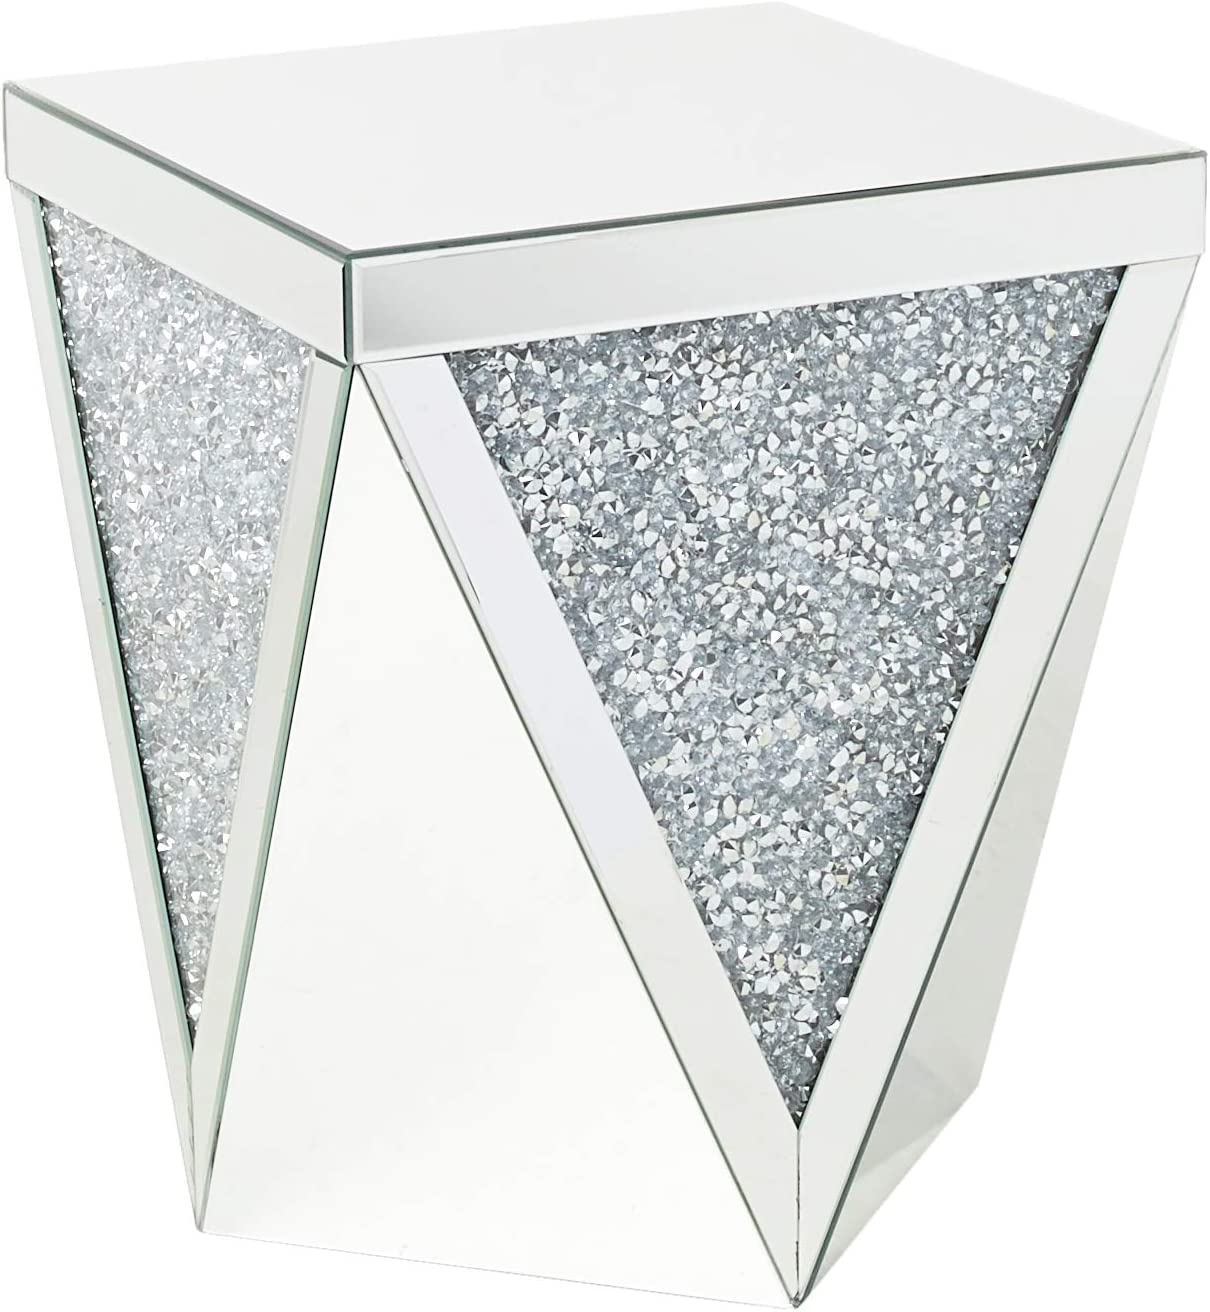 ACME Furniture 82772 Noralie Mirrored End Table